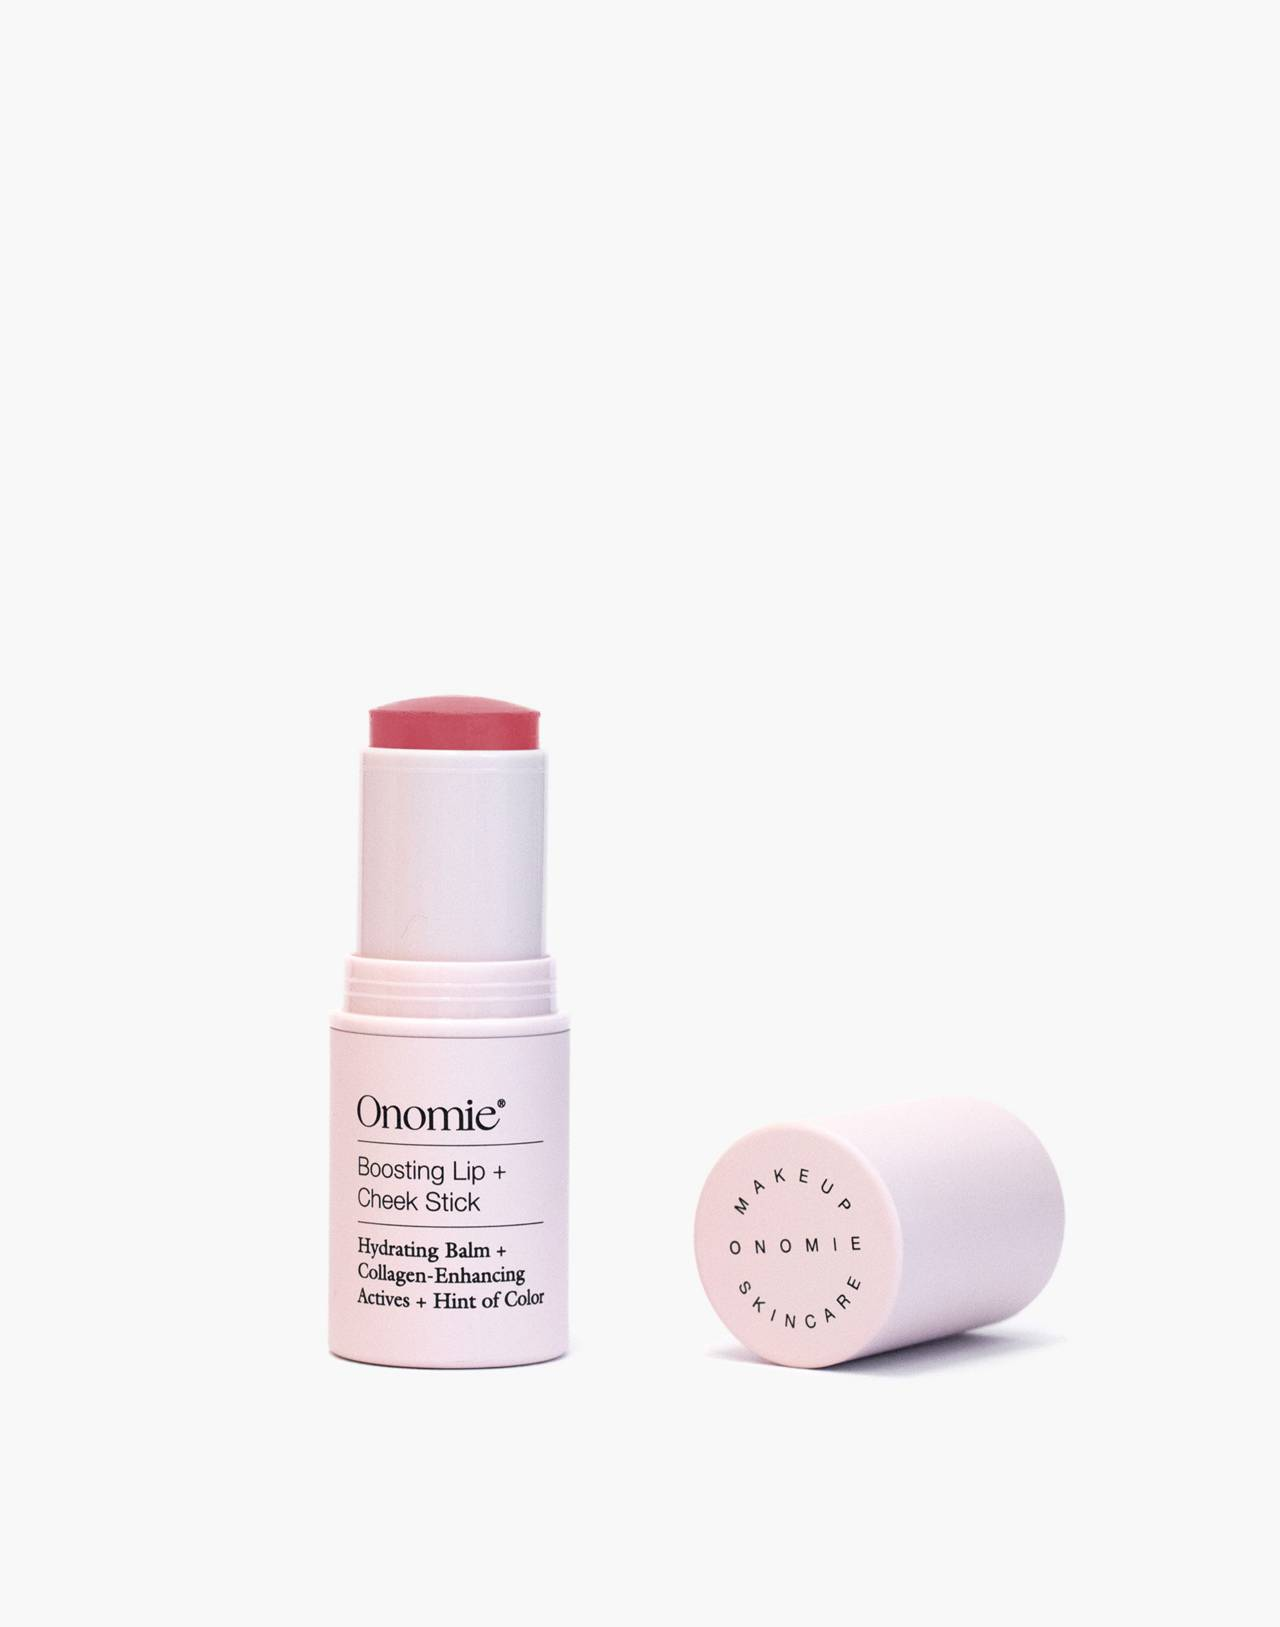 Onomie® Boosting Lip and Cheek Stick in orange image 1